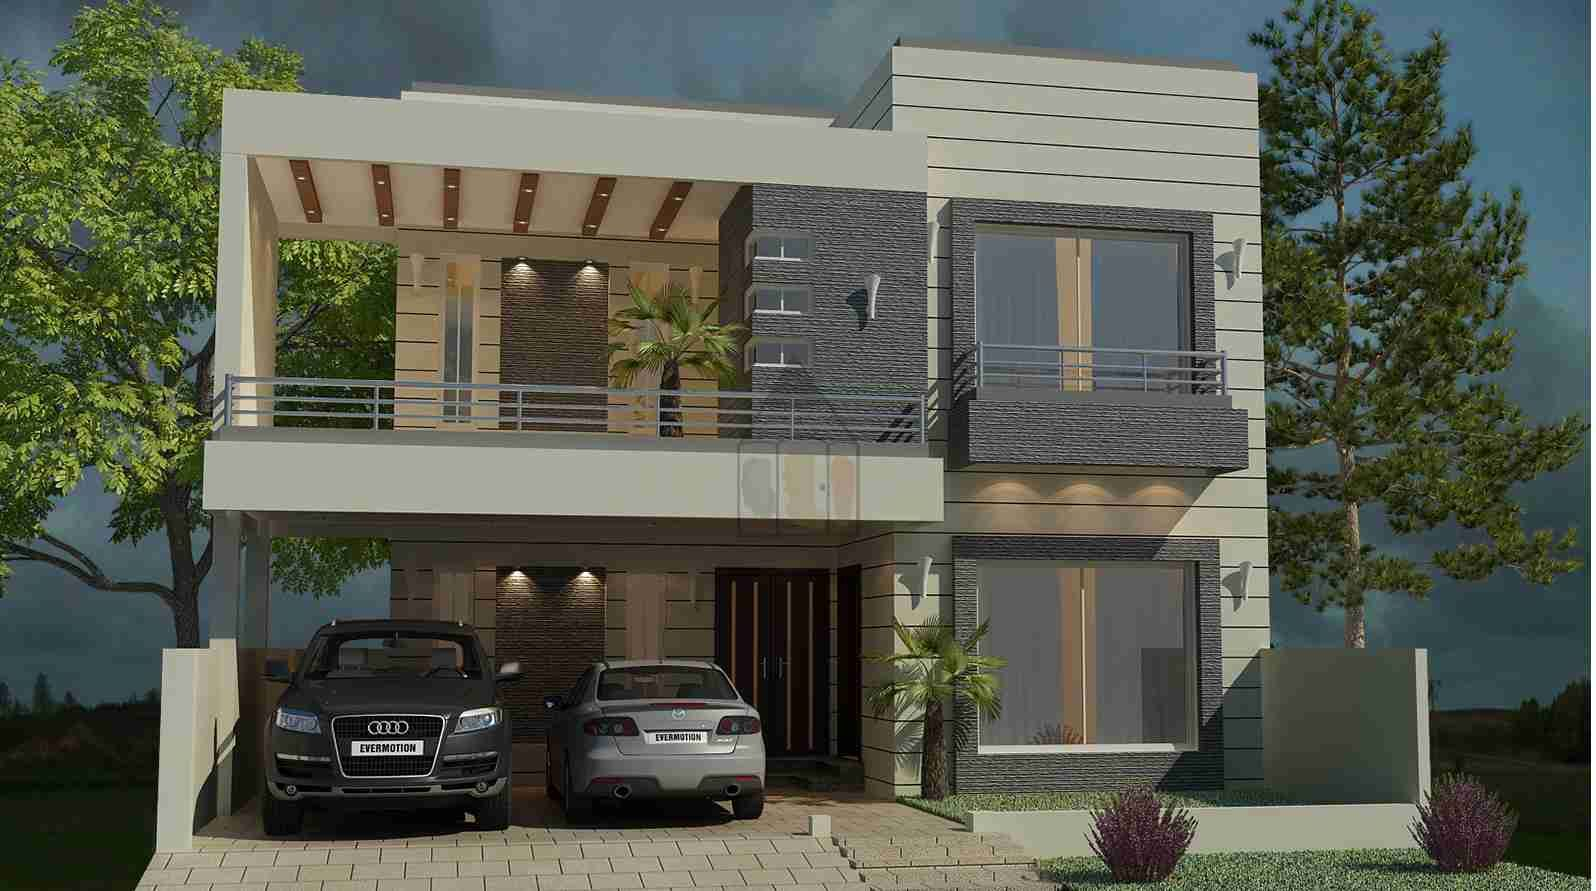 Beautiful 10 marla house plan as its layout plan is designed on 3 stories and on